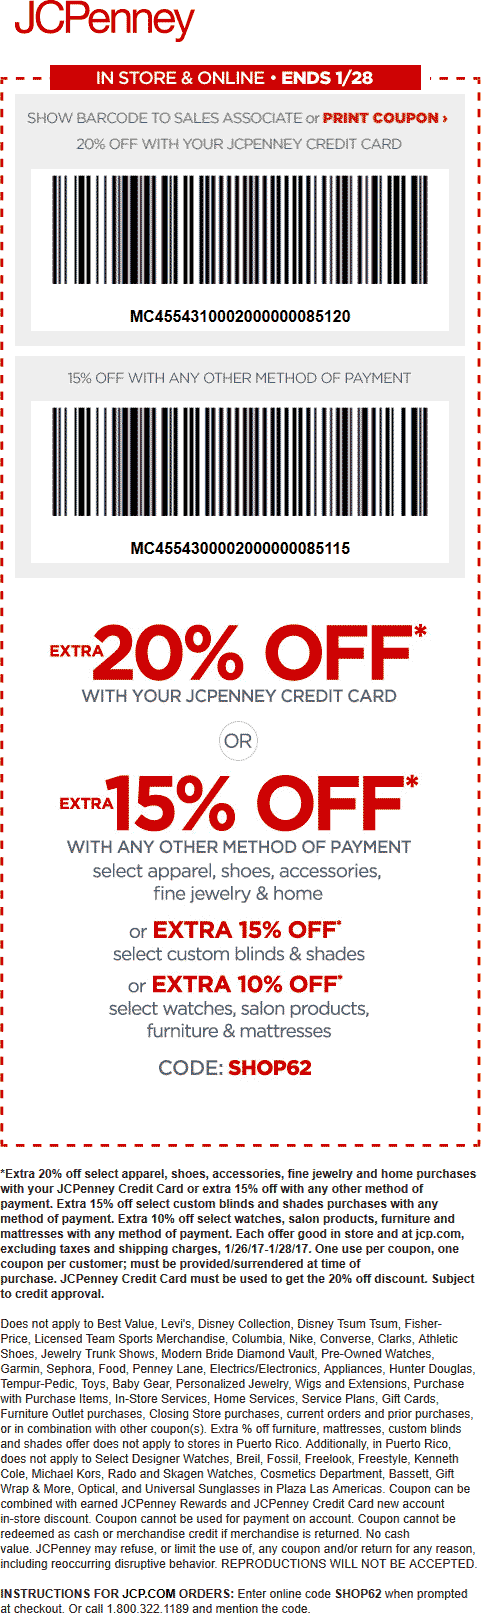 JCPenney Coupon August 2018 15% off at JCPenney, or online via promo code SHOP62